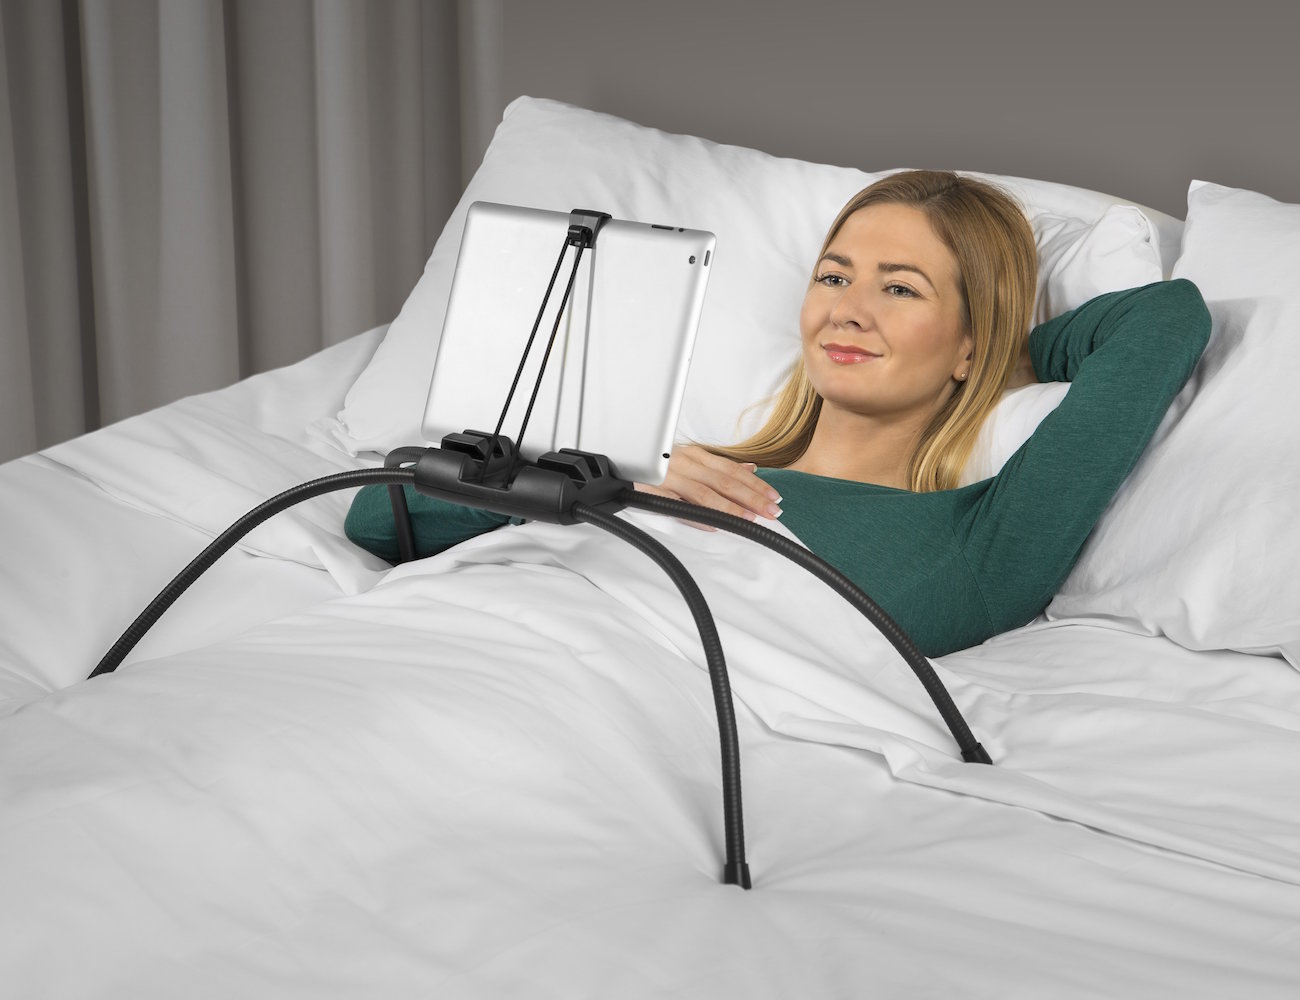 Tablift Tablet Stand Lay Back And Enjoy Browsing